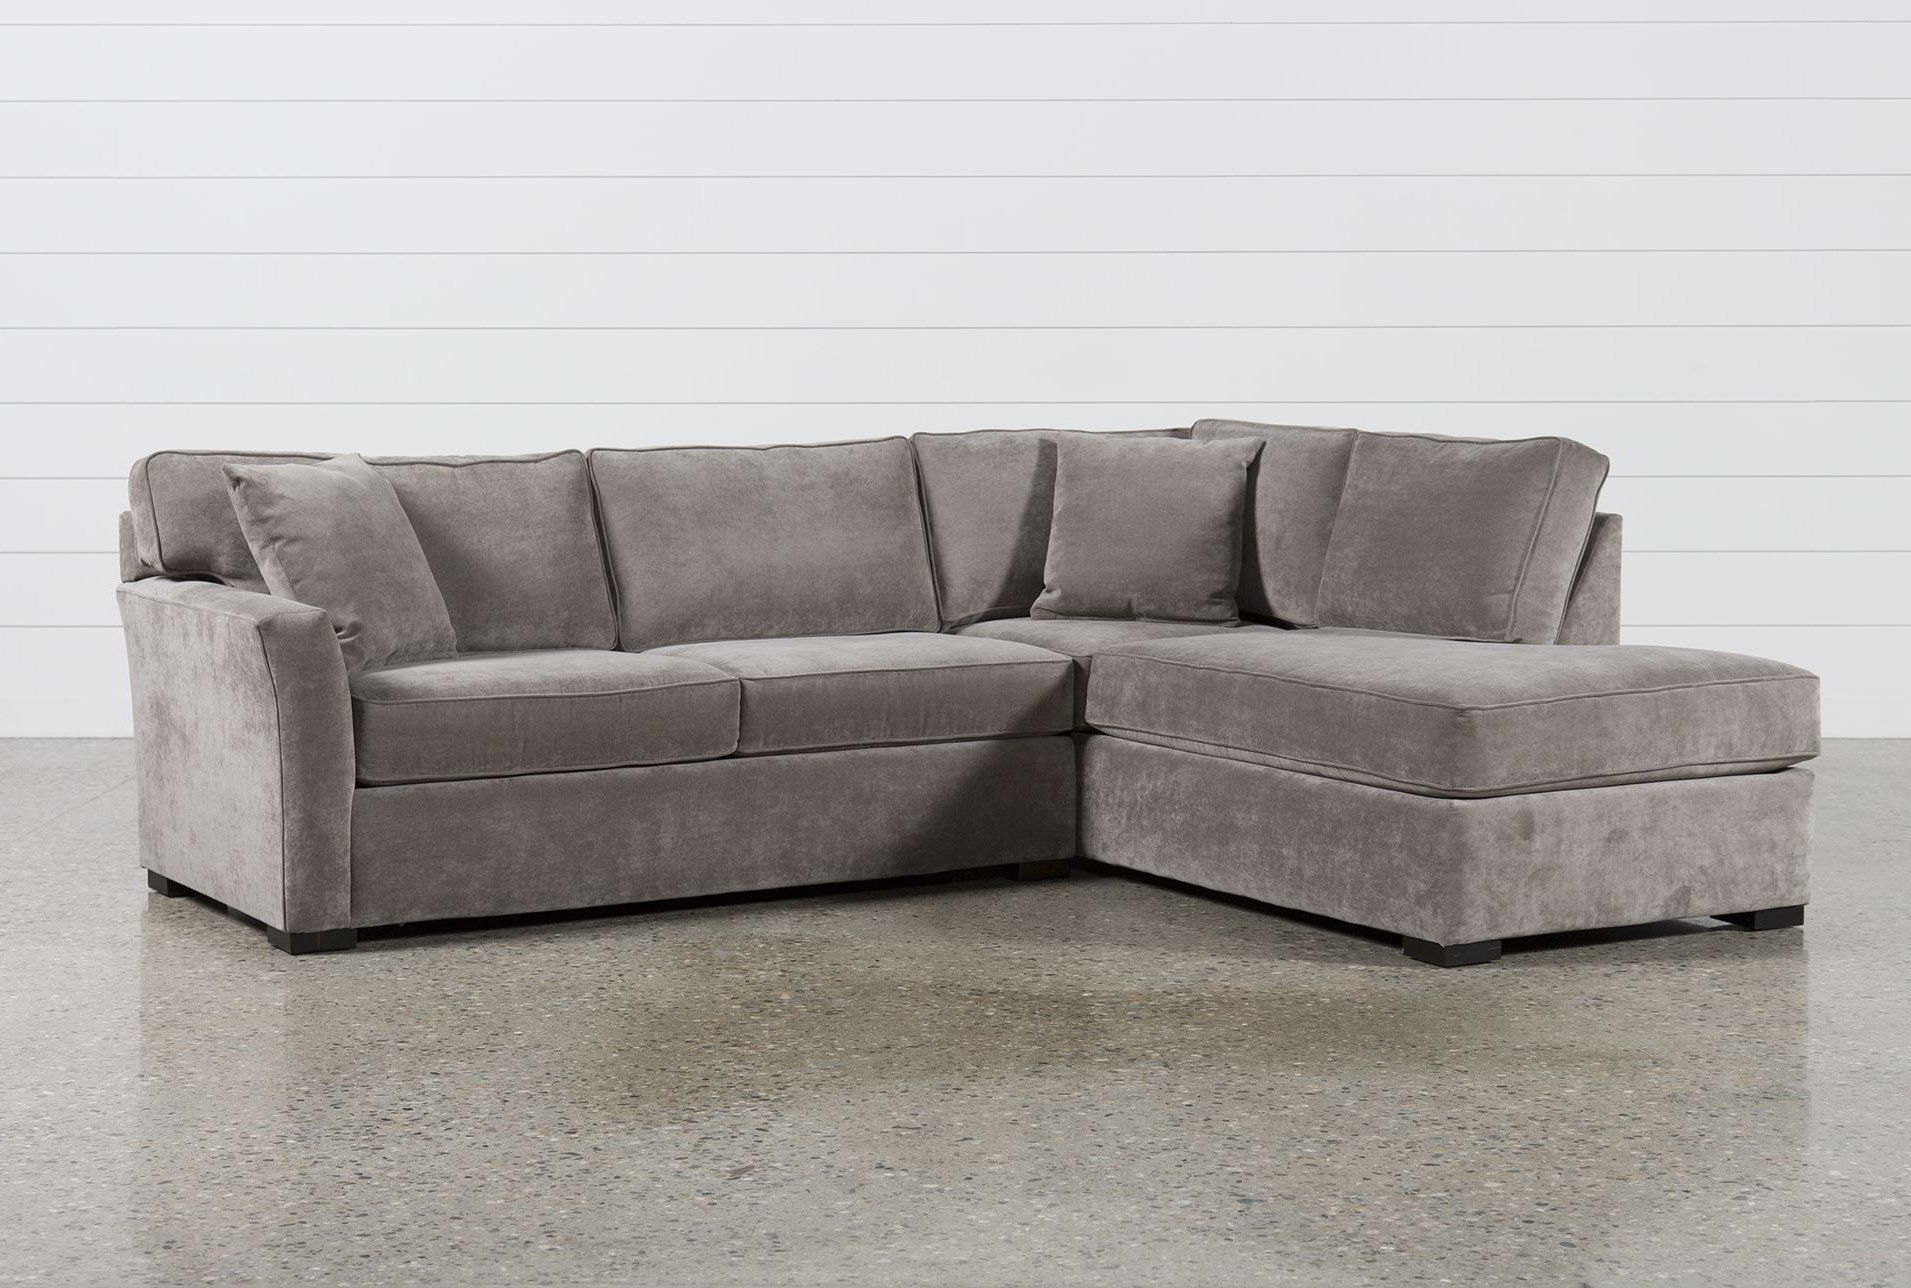 Aspen 2 Piece Sectional W/raf Chaise, Grey, Sofas | Upholstery, Full With Regard To Taren Reversible Sofa/chaise Sleeper Sectionals With Storage Ottoman (Image 3 of 25)